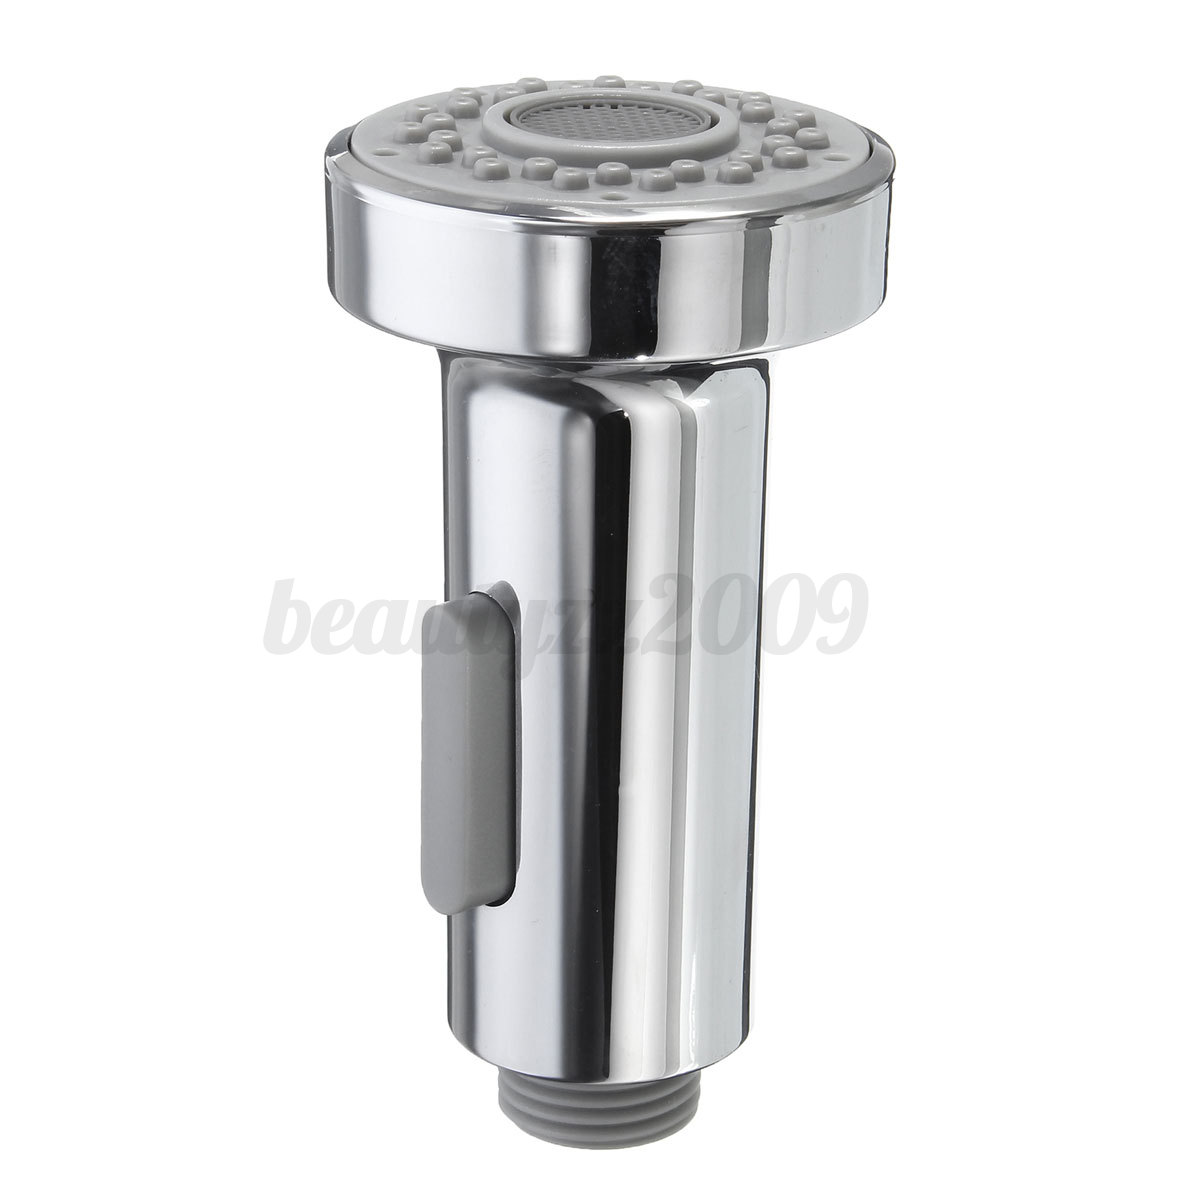 Spare replacement kitchen mixer tap pull out faucet shower for Replace a kitchen faucet